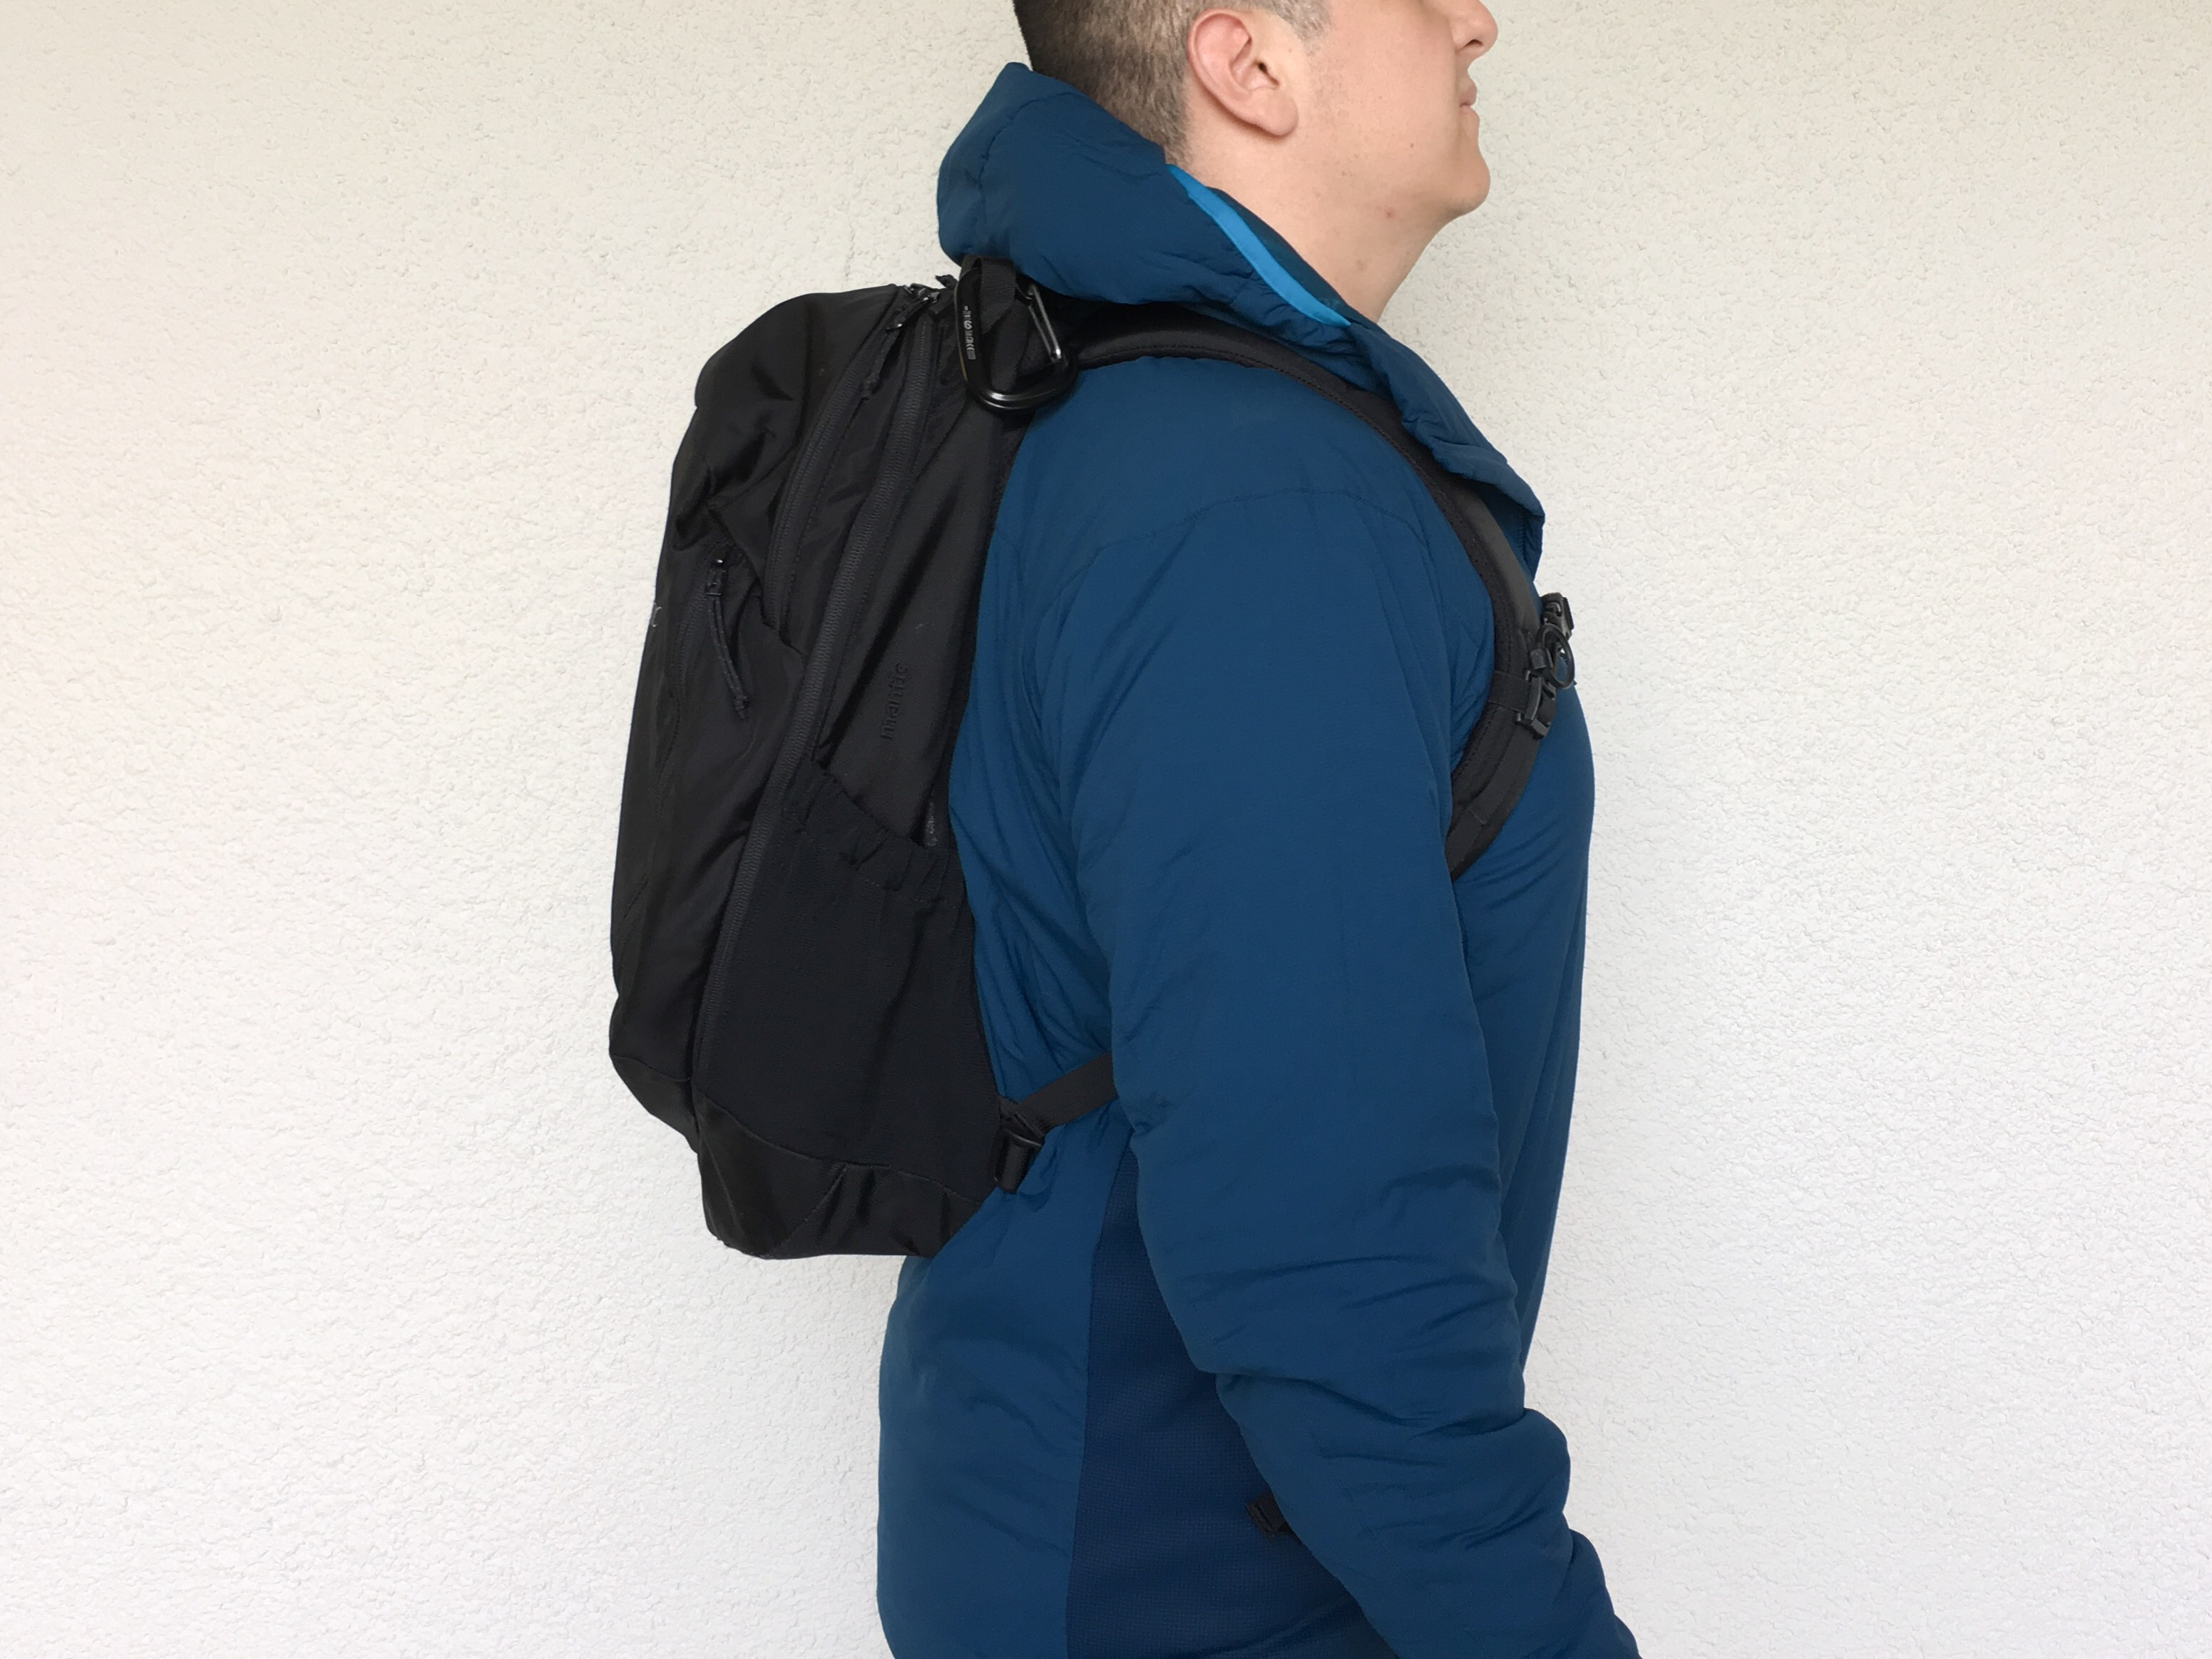 Arcteryx Mantis 26 review on body side view